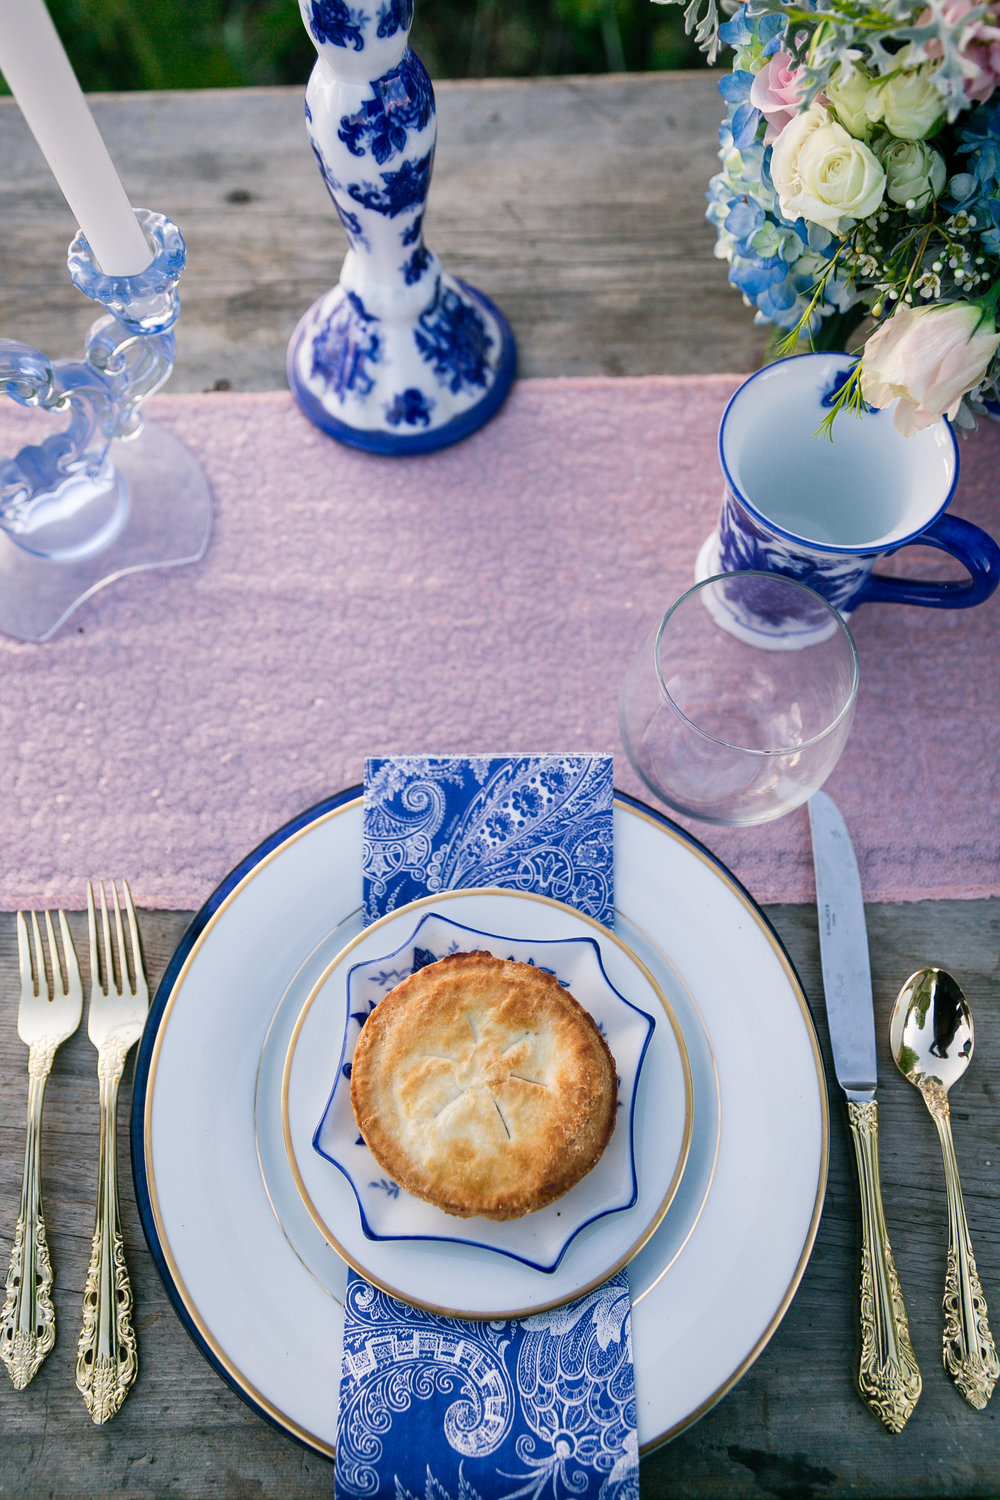 Blueberry pie wedding